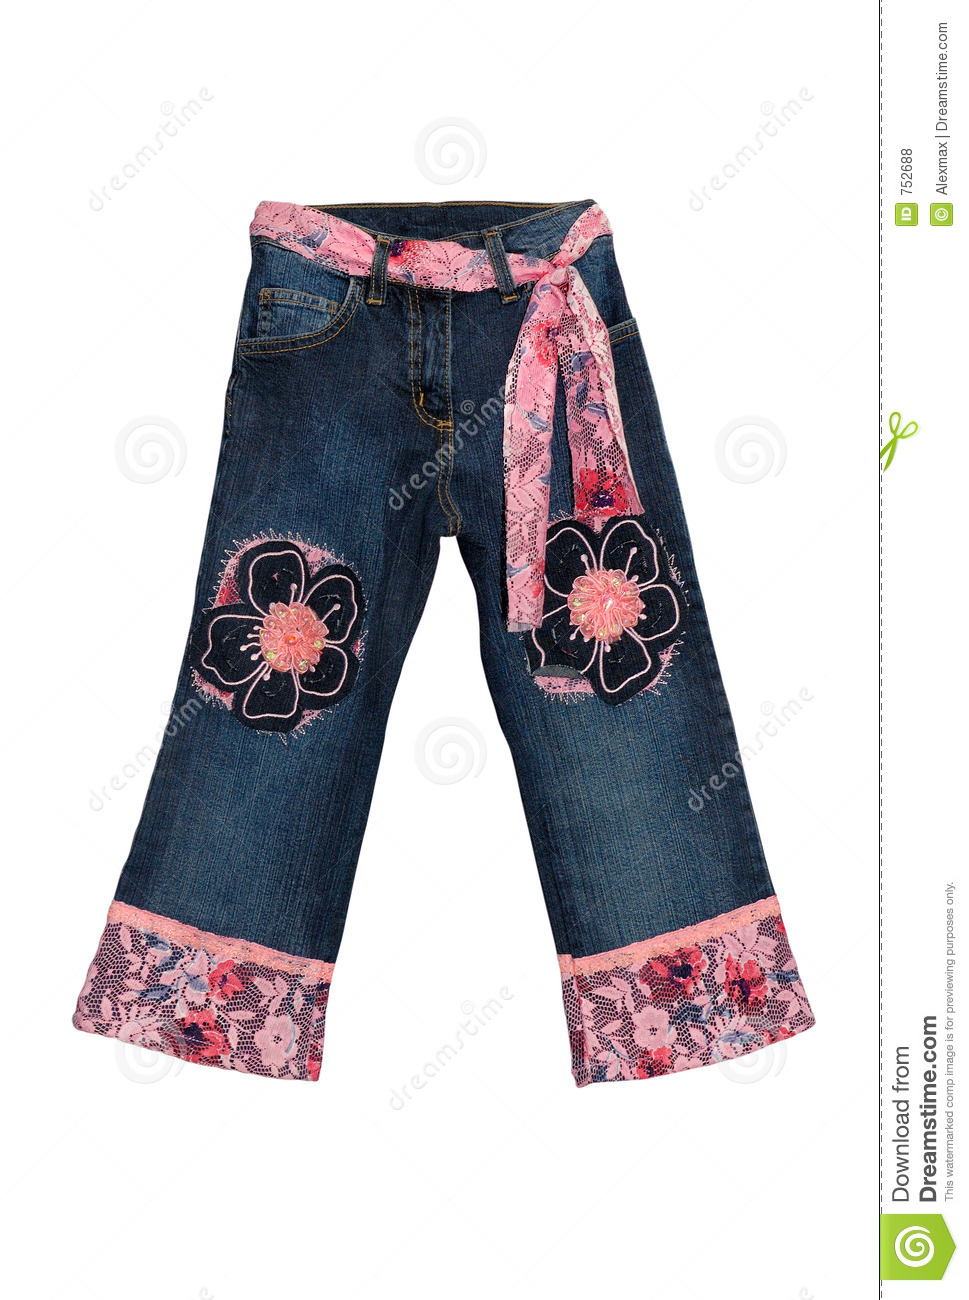 Children S Clothing Blue Girl Jeans With Pink Flowers Pattern And Belt